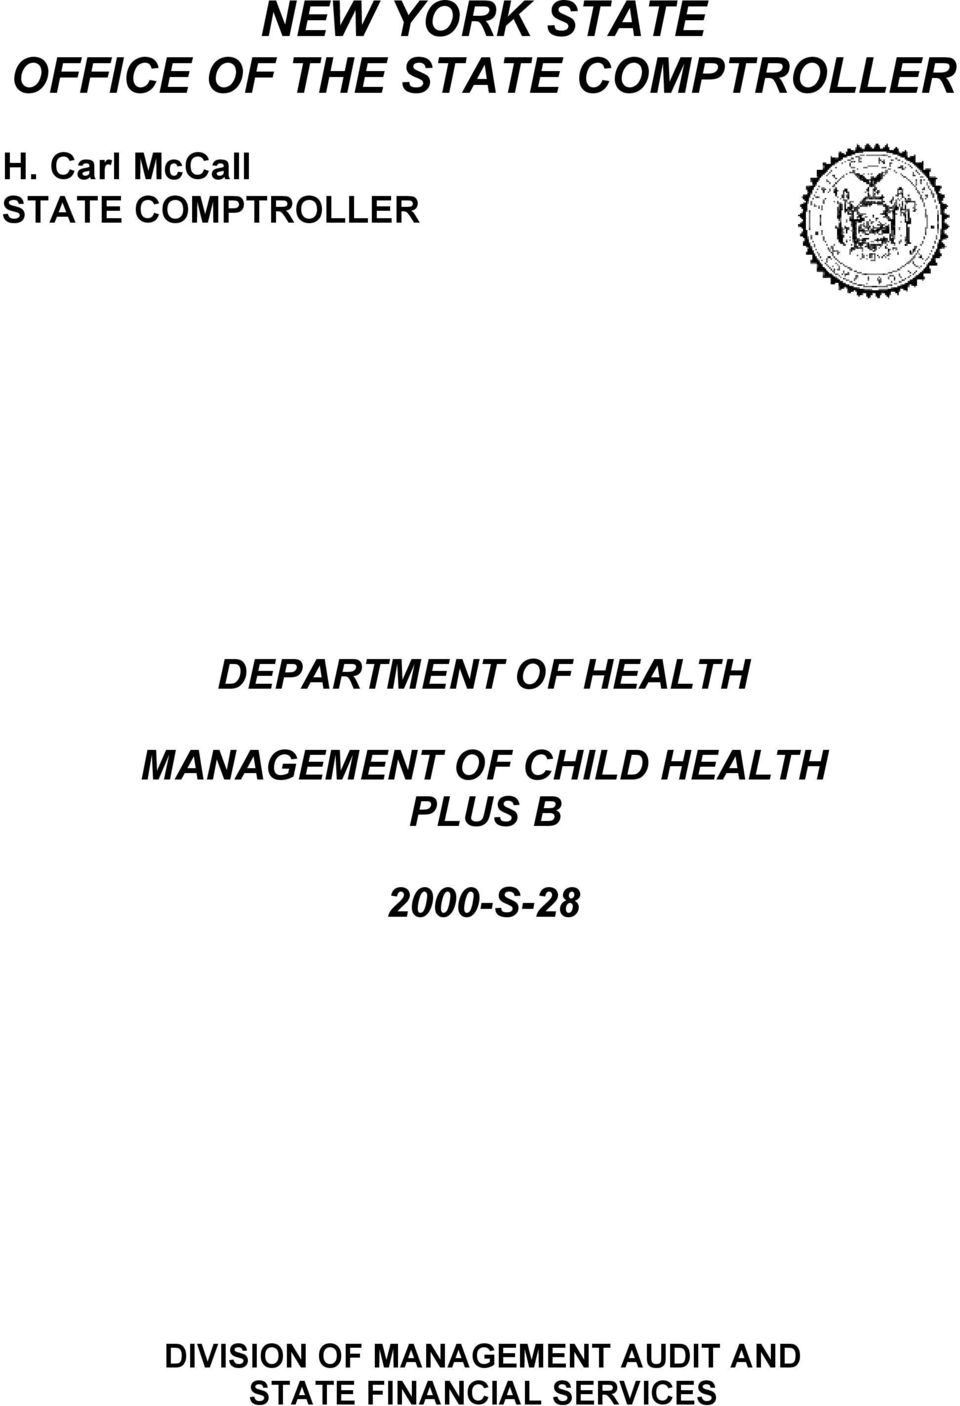 MANAGEMENT OF CHILD HEALTH PLUS B 2000-S-28